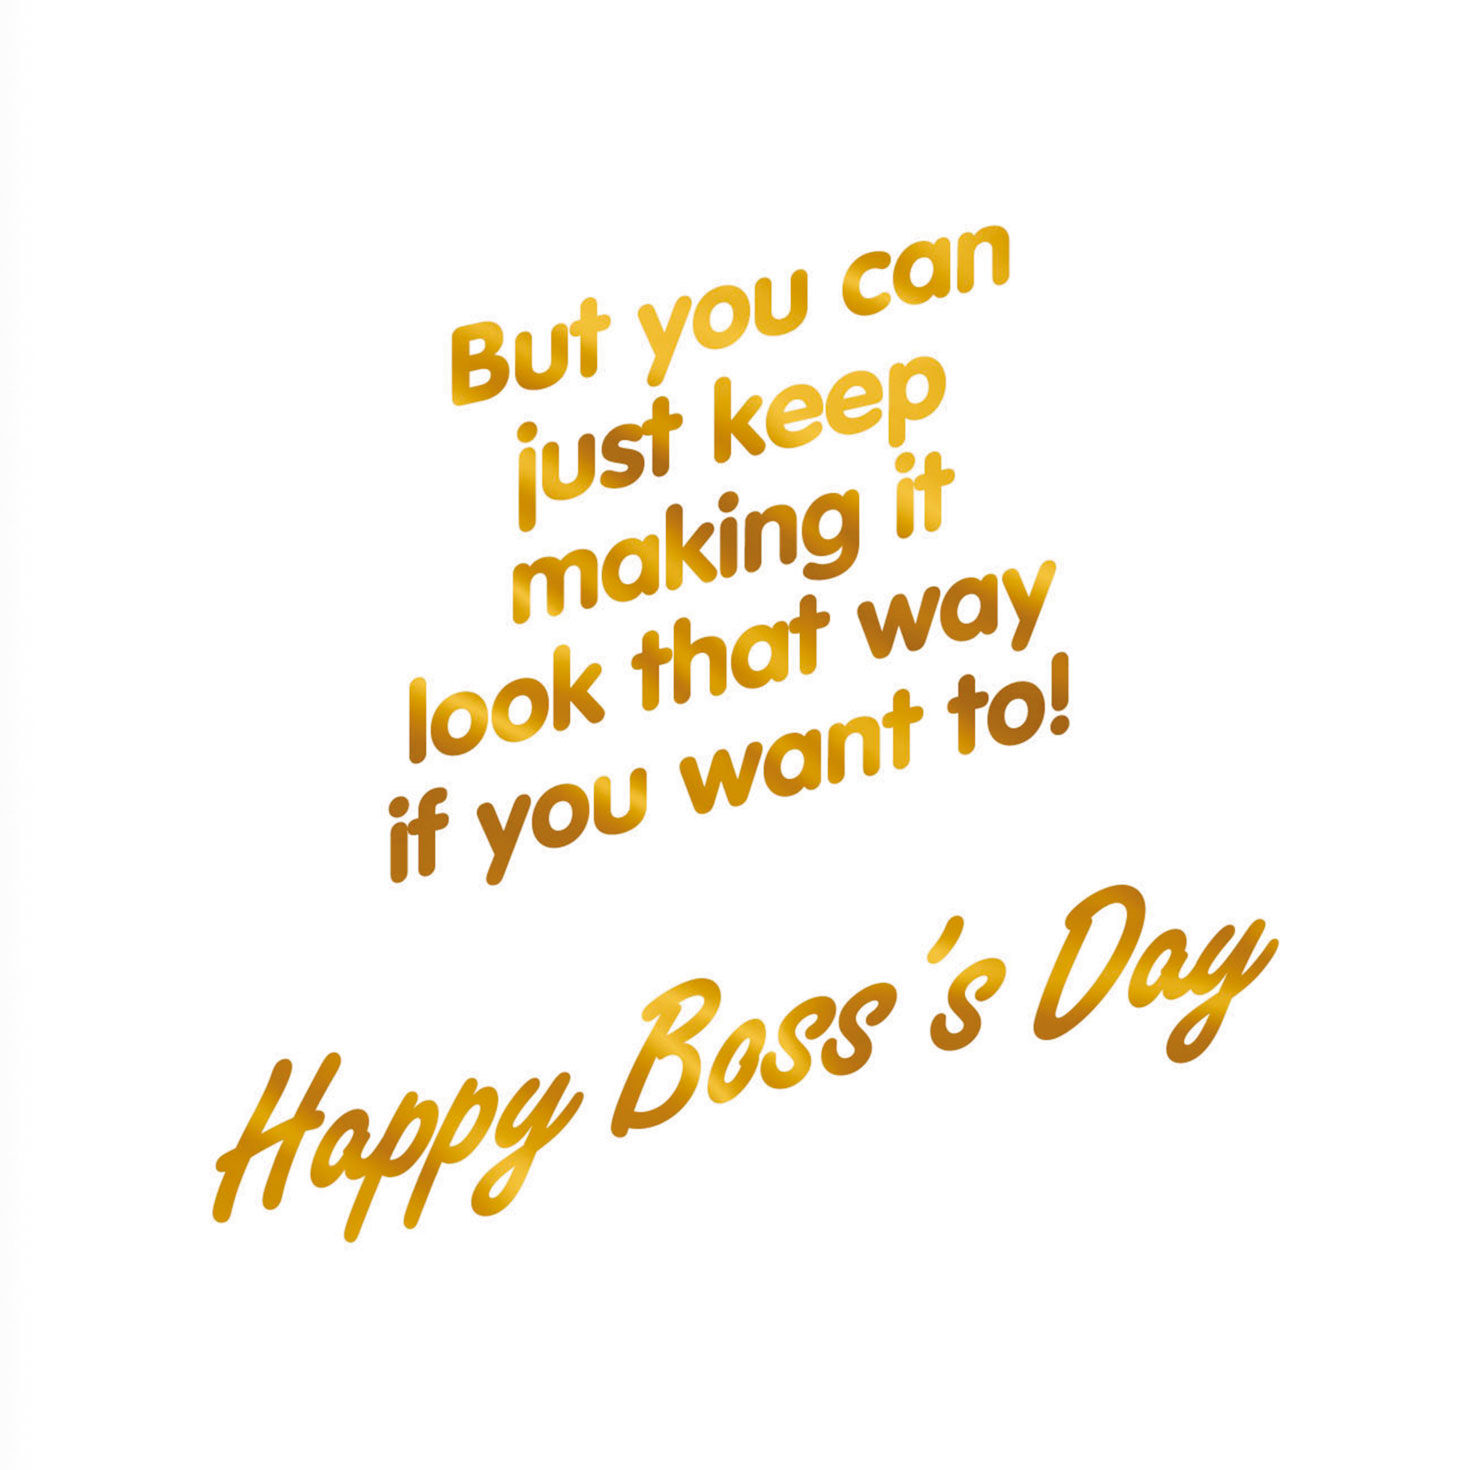 photograph relating to Free Printable Boss's Day Cards called Countrywide Manager Working day Bosss Working day Hallmark